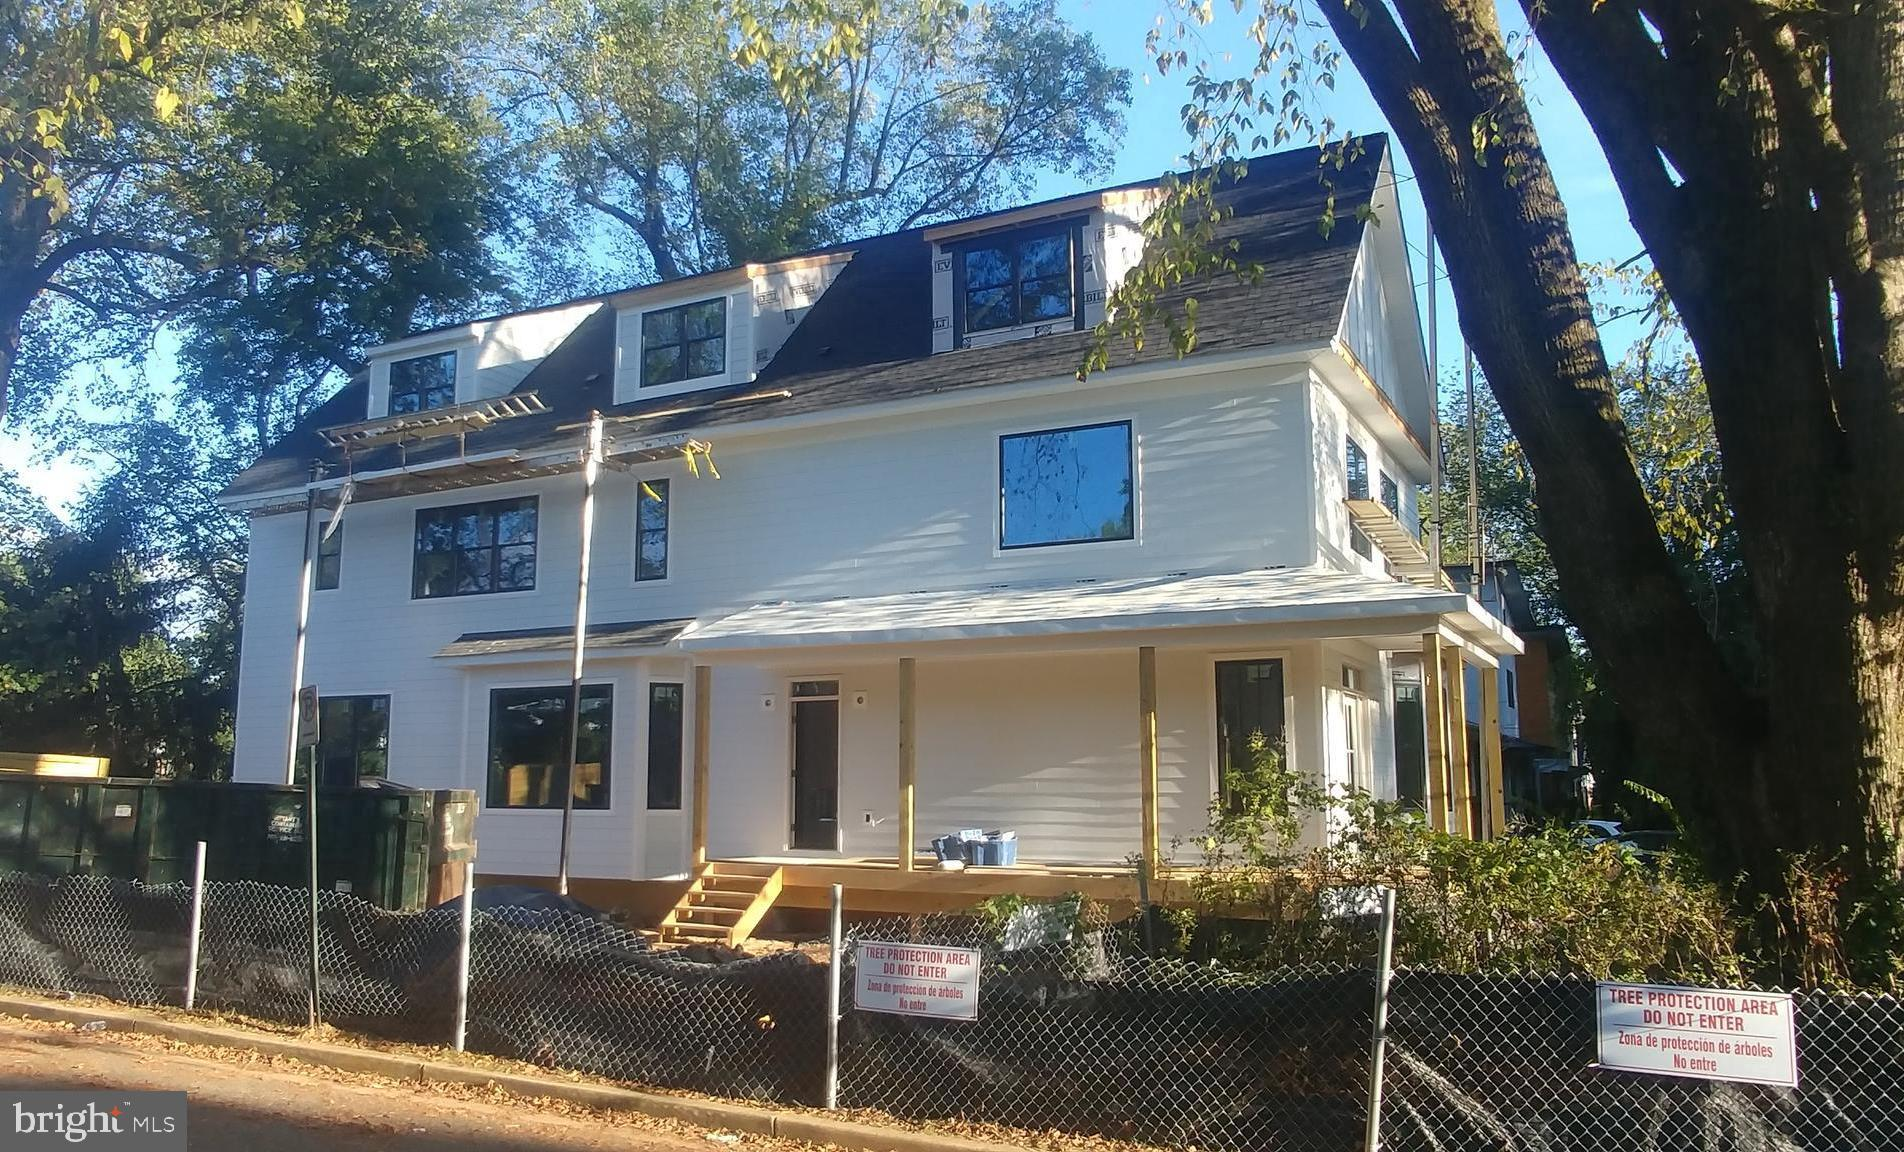 New build coming soon in Waycroft-Woodlawn with an expected delivery of January 2020.  5 bedrooms, 4.5 baths and roughly 4500sqft on 3 levels. Fantastic location close to the Ballston Metro and just a few blocks to I-66. Property backs up directly to Woodlawn Park with access Custis Trail and Lubber Run.  A List of all features and finishes upon request. Come tour this home prior to completion.